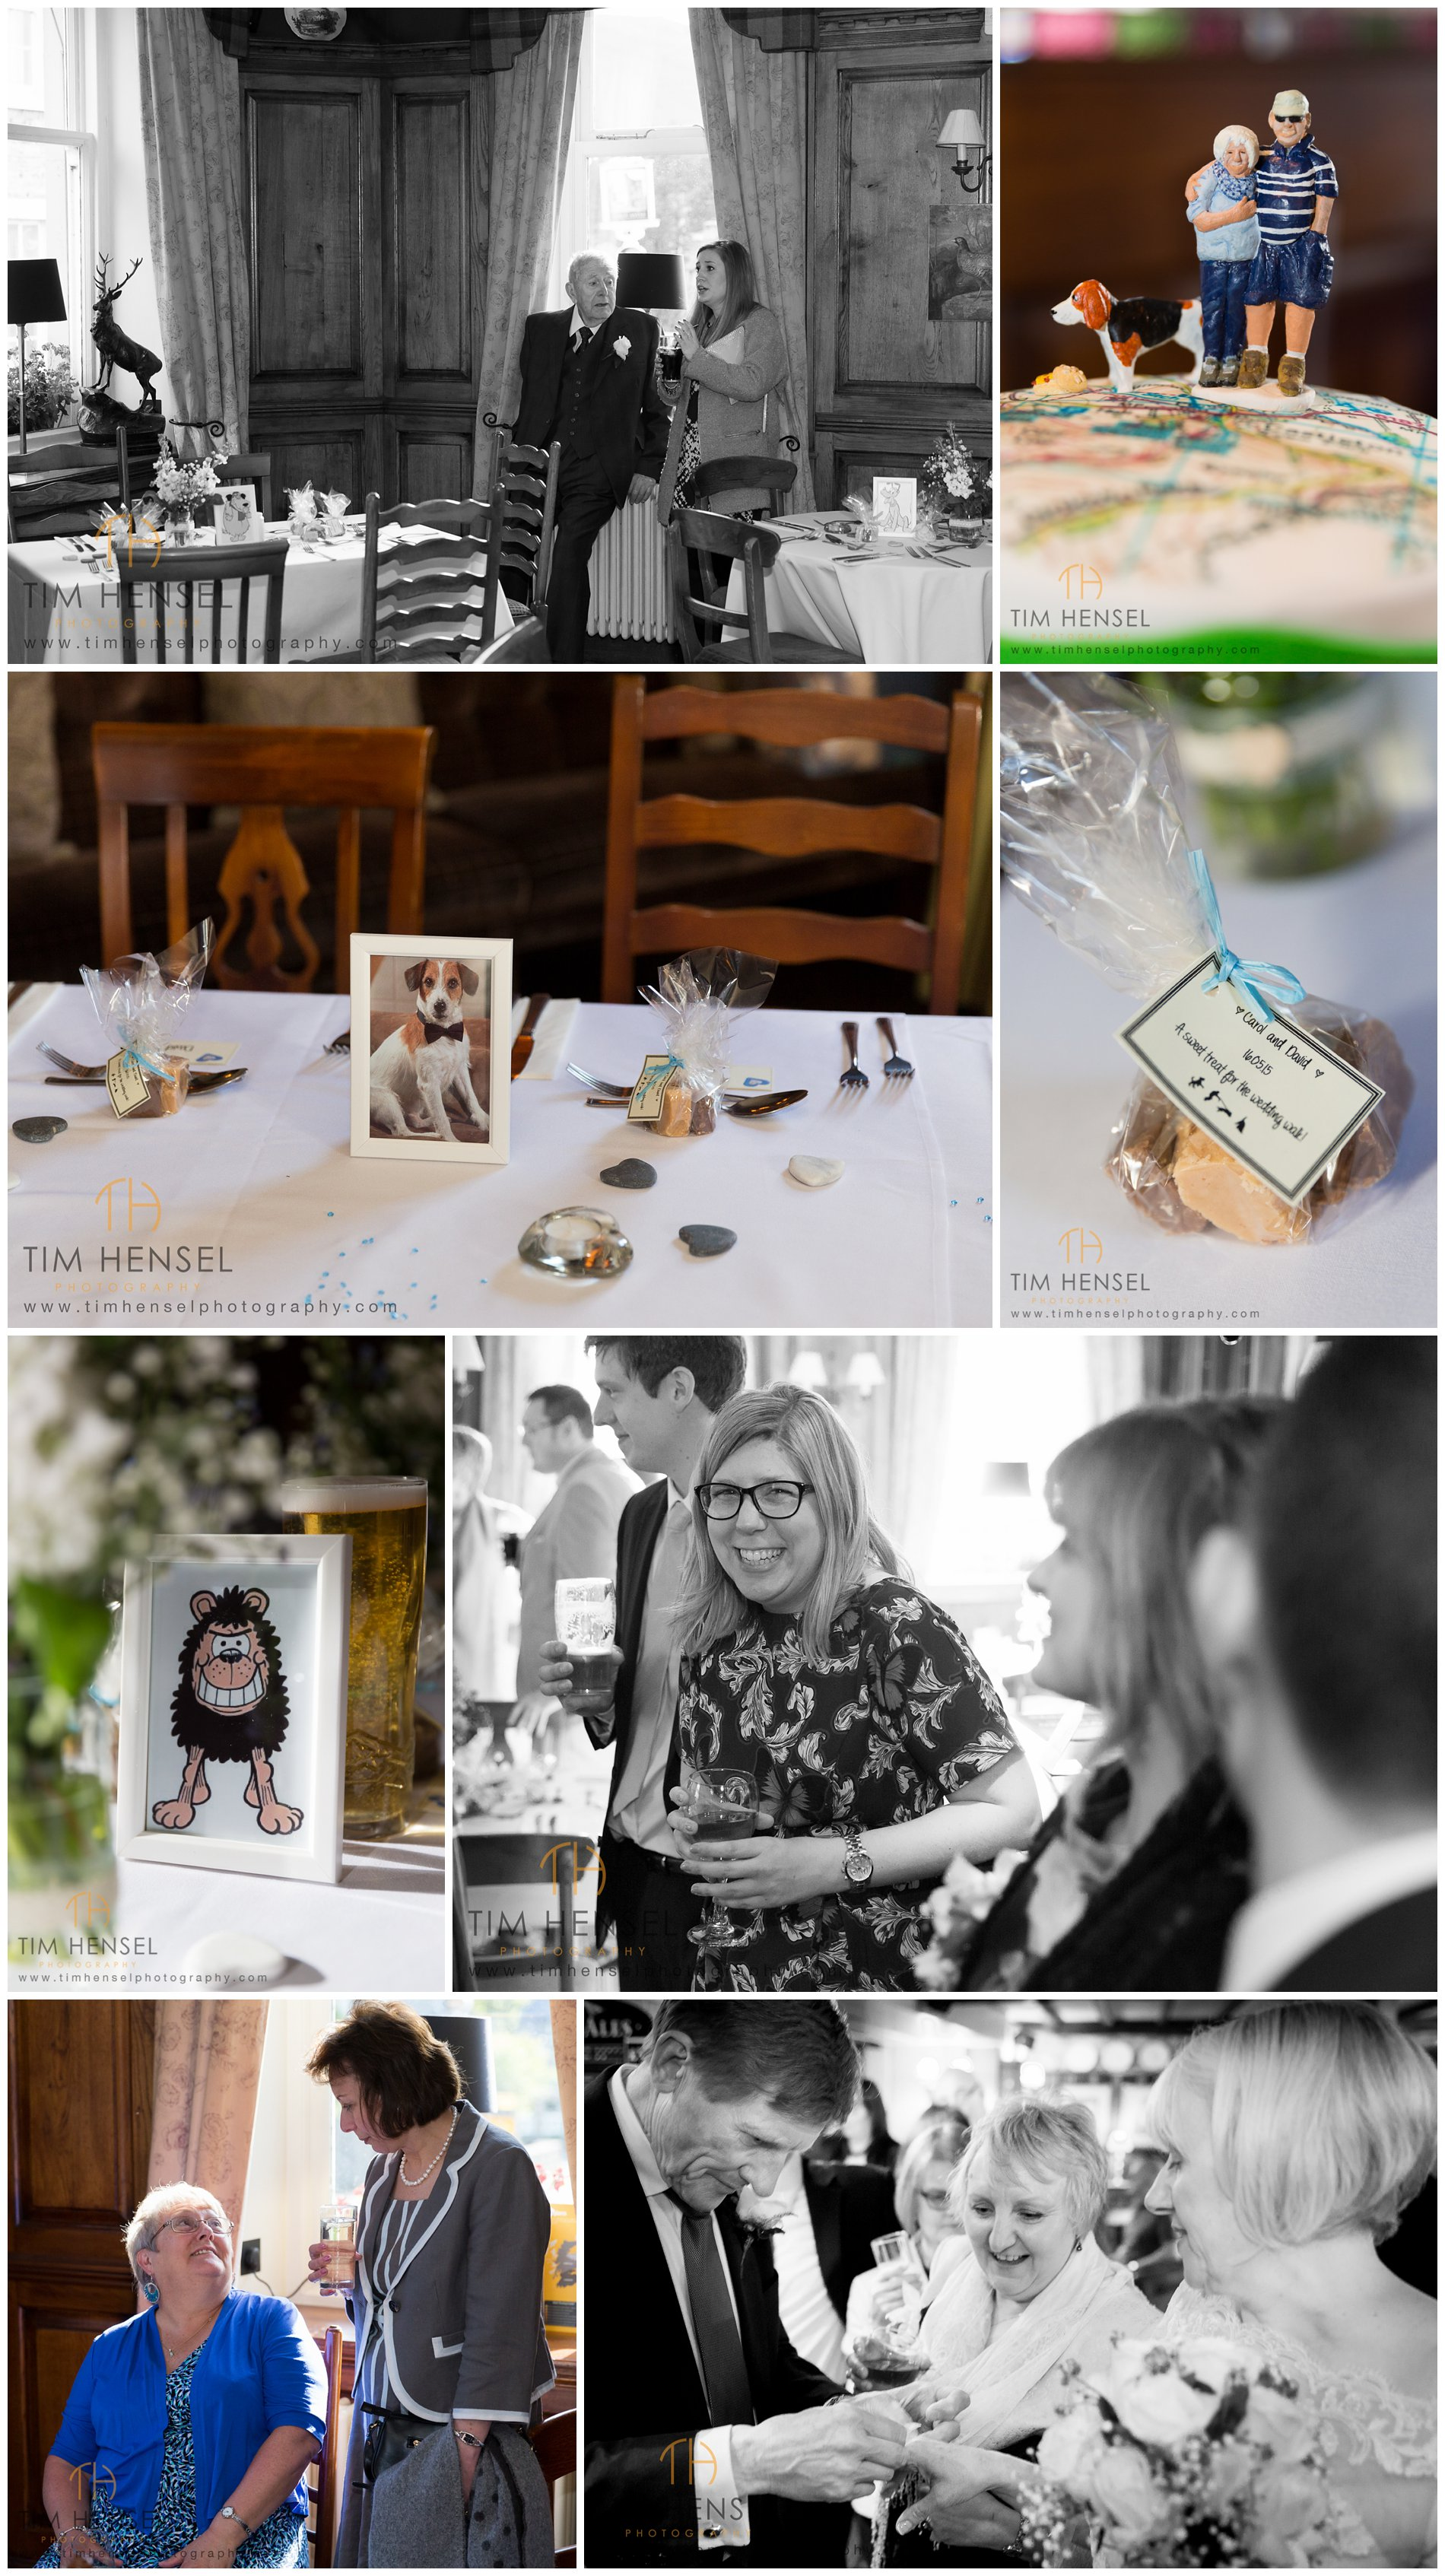 Details and photos of the wedding reception at The Bull's Head in Castleton, Derbyshire